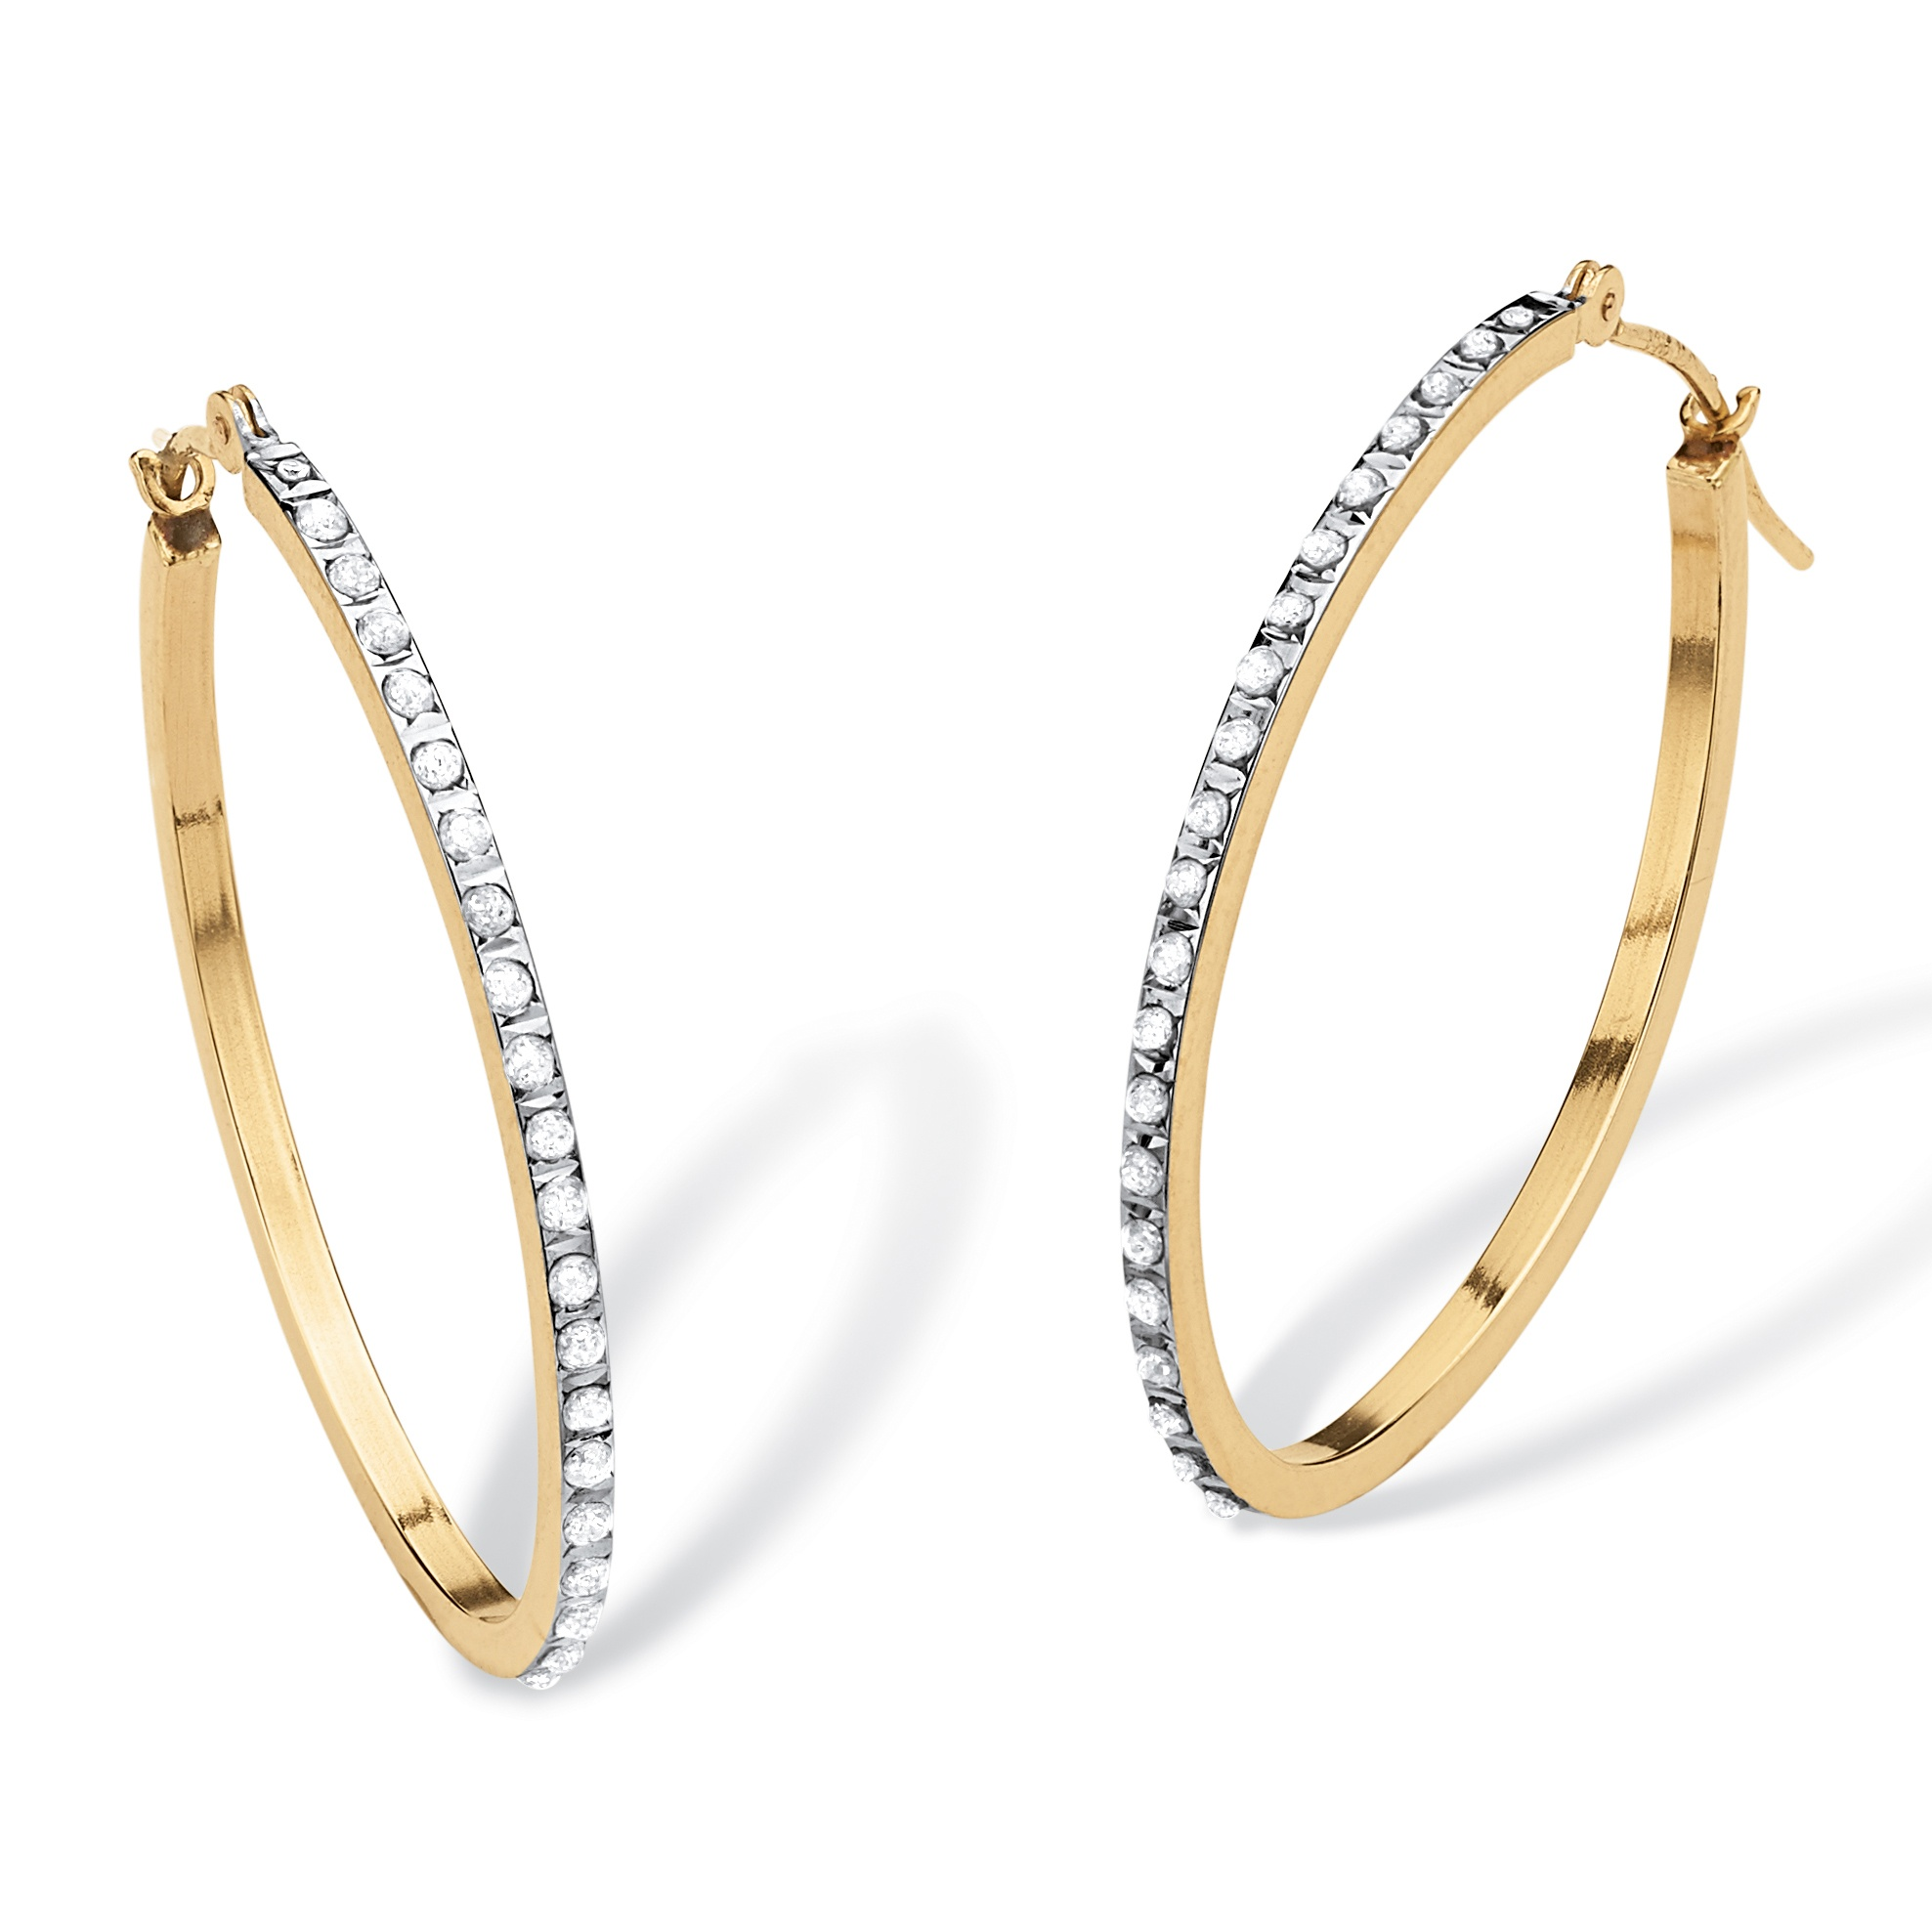 Hoops Premier Diamonds Fine Jewelry  Palm Beach Jewelry. Kalyan Jewellers Rings. Real Gem Rings. City Ventura County Hall Wedding Rings. Colored Rings. Crushed Diamond Wedding Rings. Detailed Band Engagement Rings. Neha Name Wedding Rings. Scratched Engagement Rings